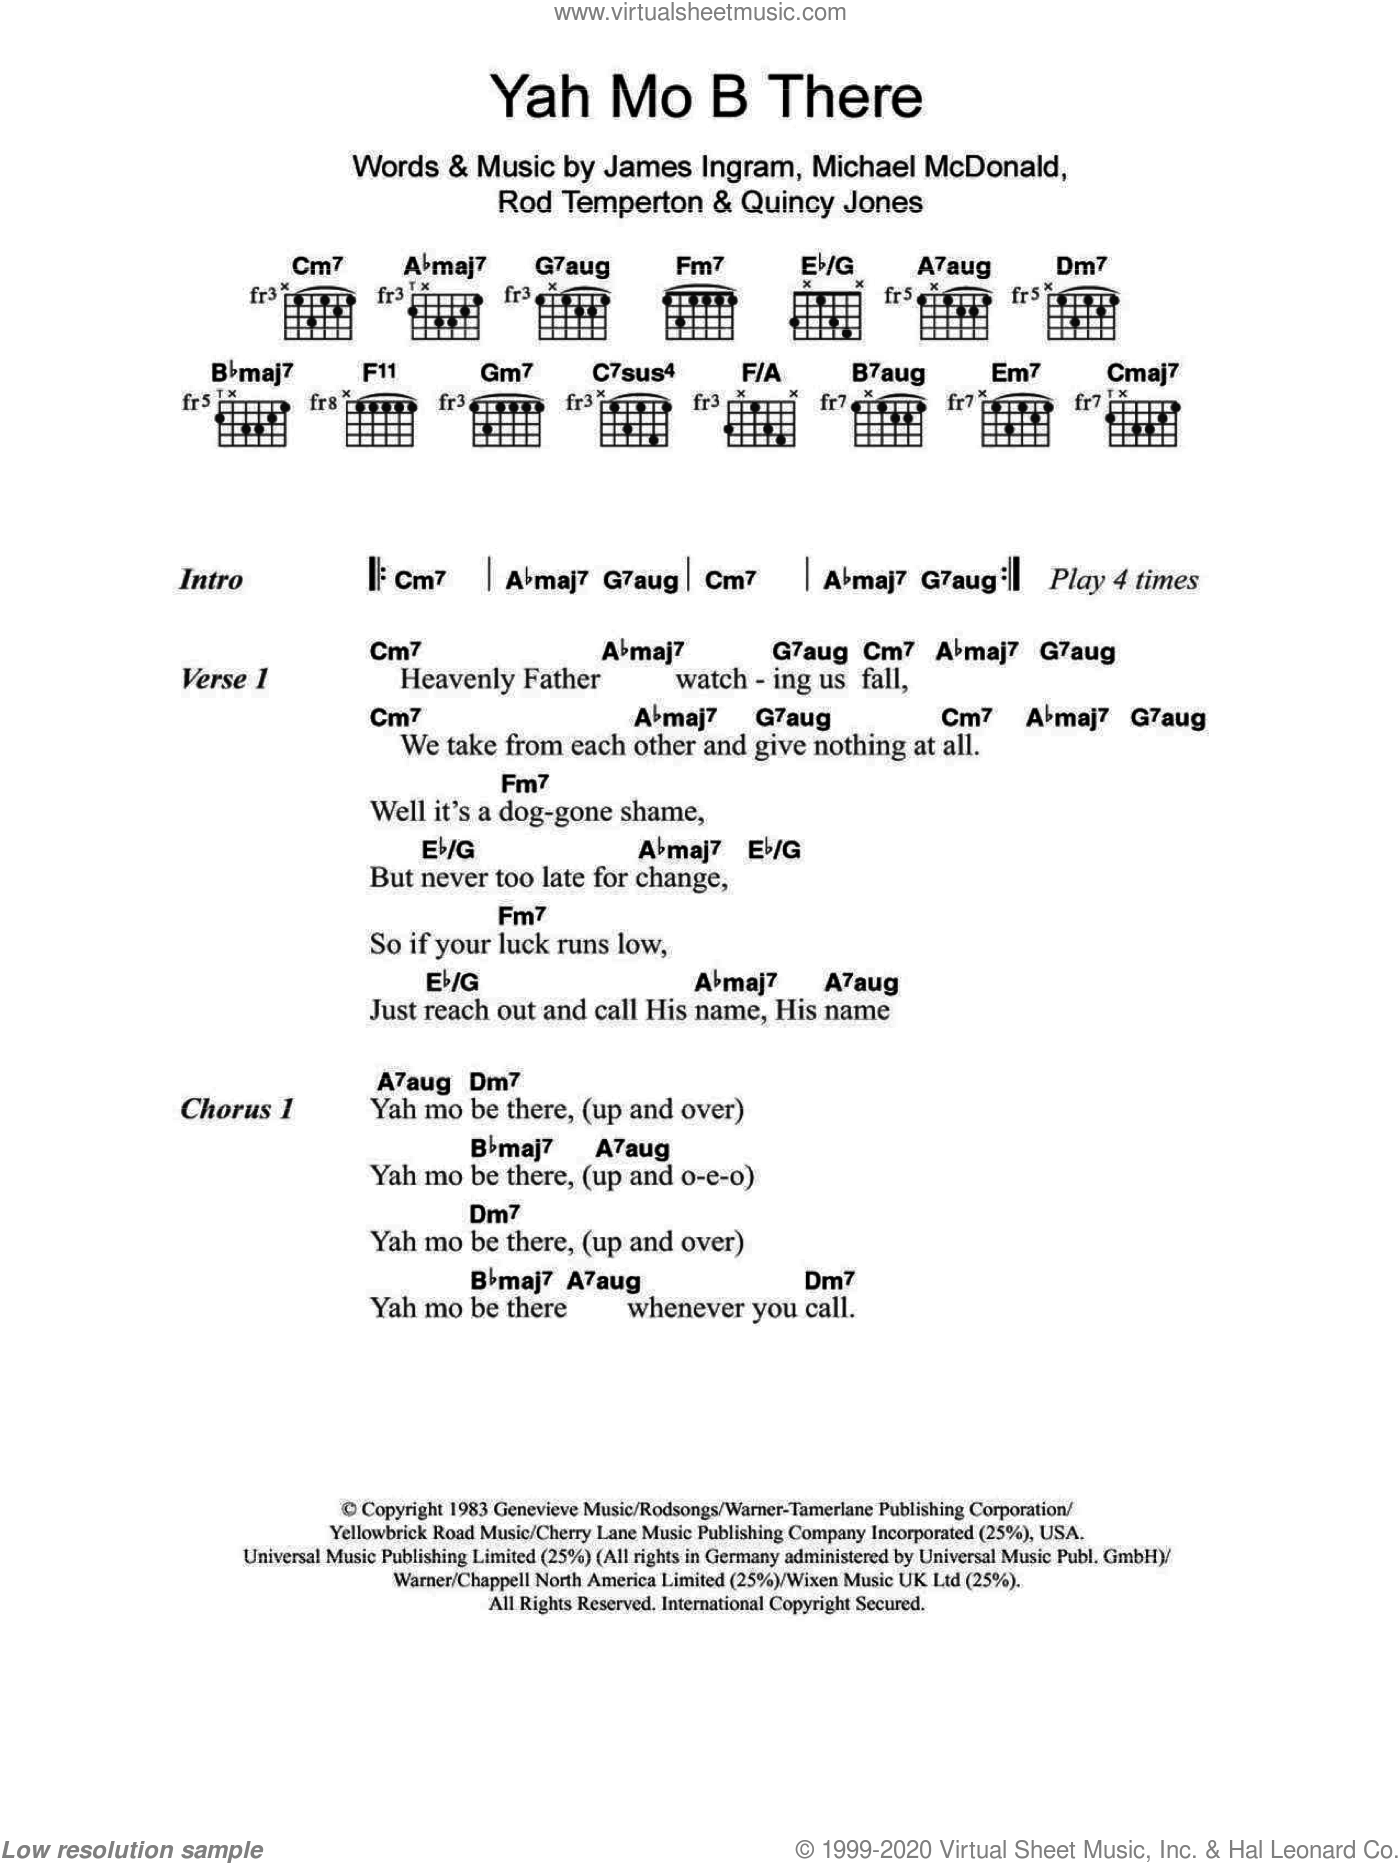 Yah Mo B There sheet music for guitar (chords, lyrics, melody) by Rod Temperton